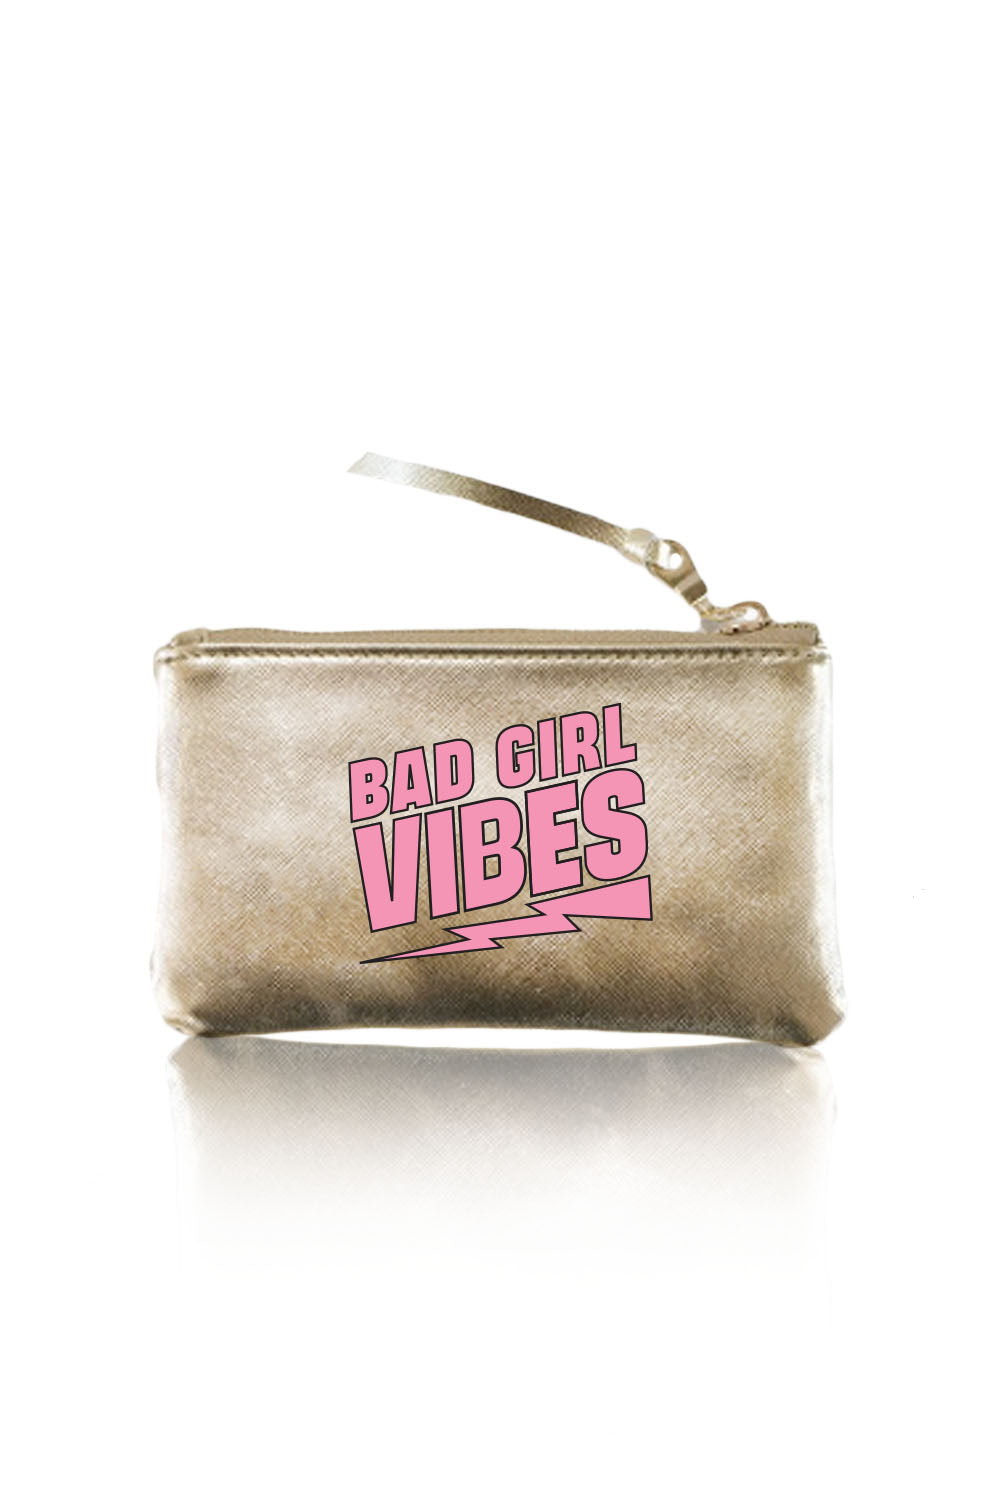 VEGAN POUCH - Bad Girl Vibes